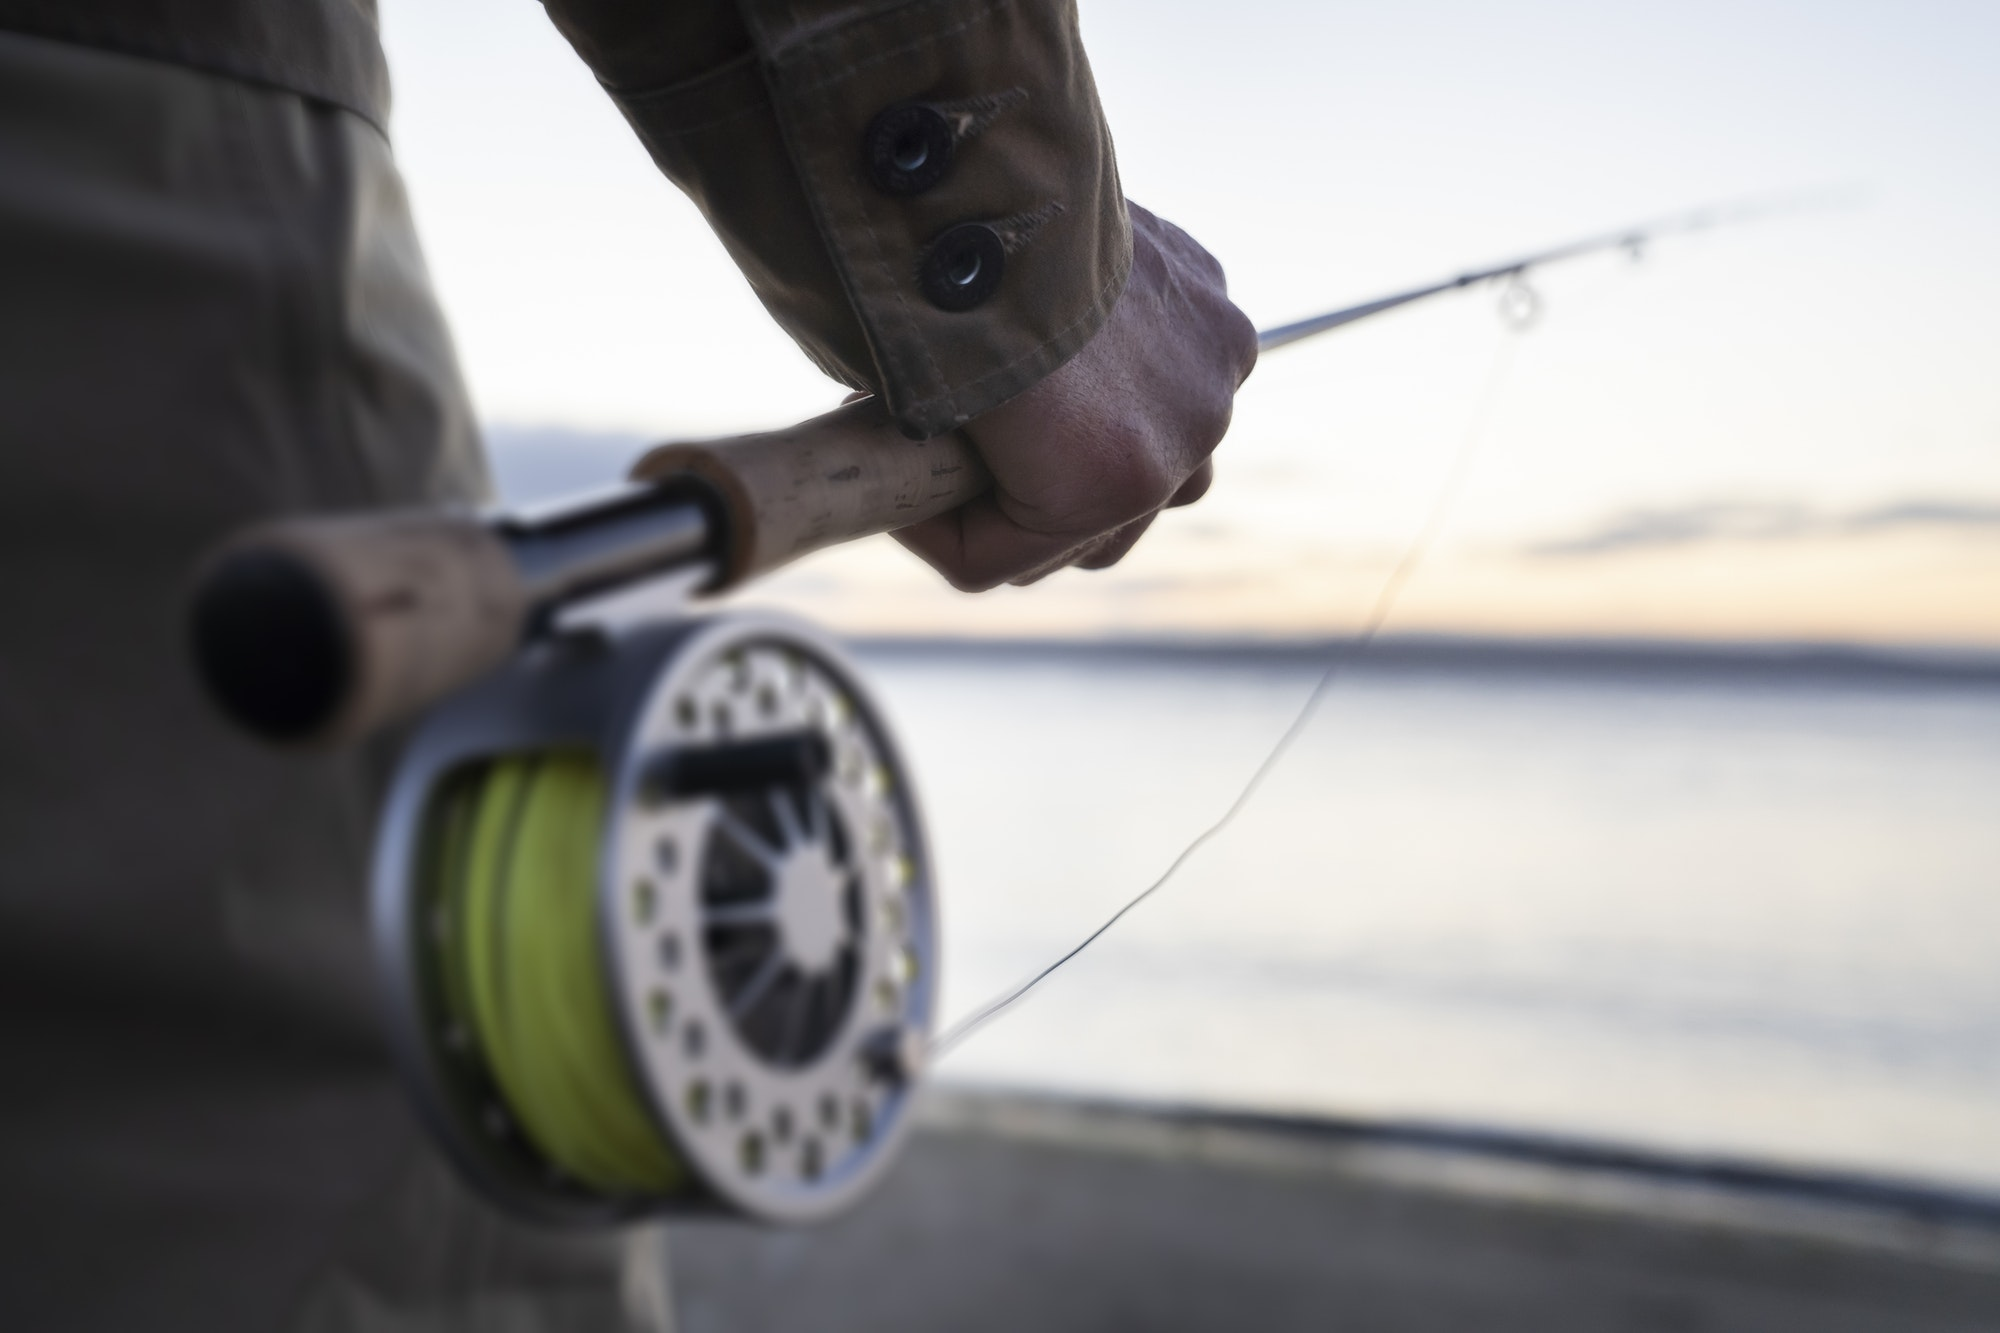 A closeup of a male hand holding a fly fishing rod and reel at the water's edge on a beach.